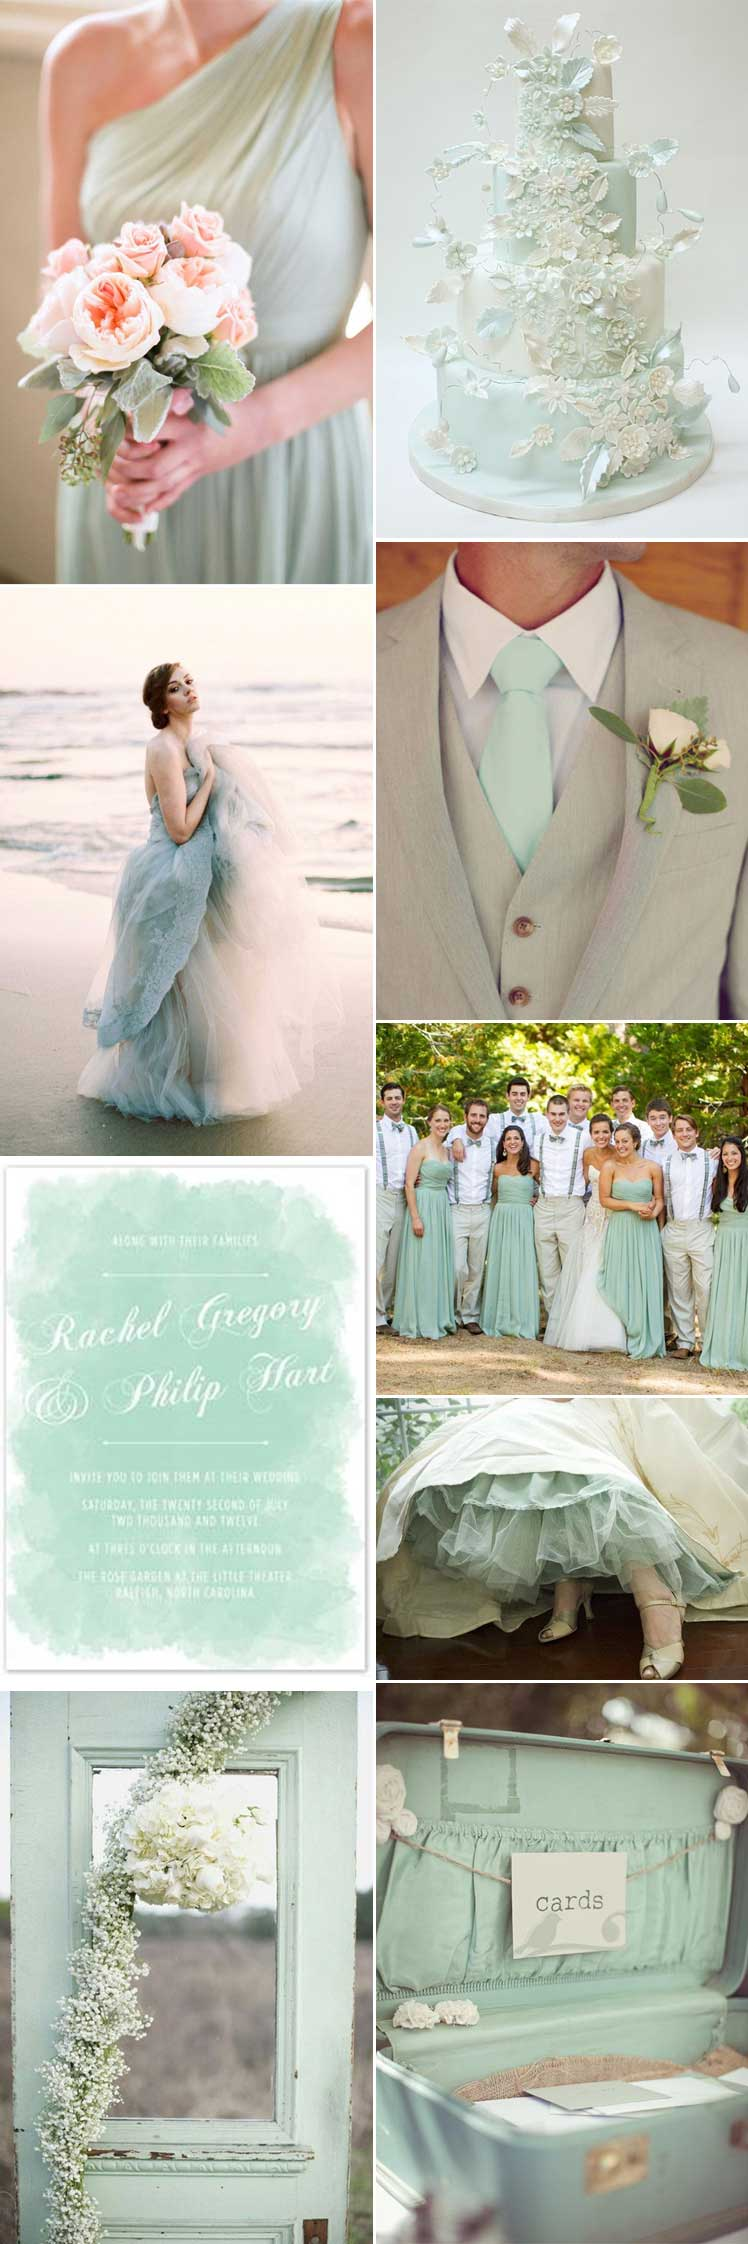 dreamy seafoam wedding ideas